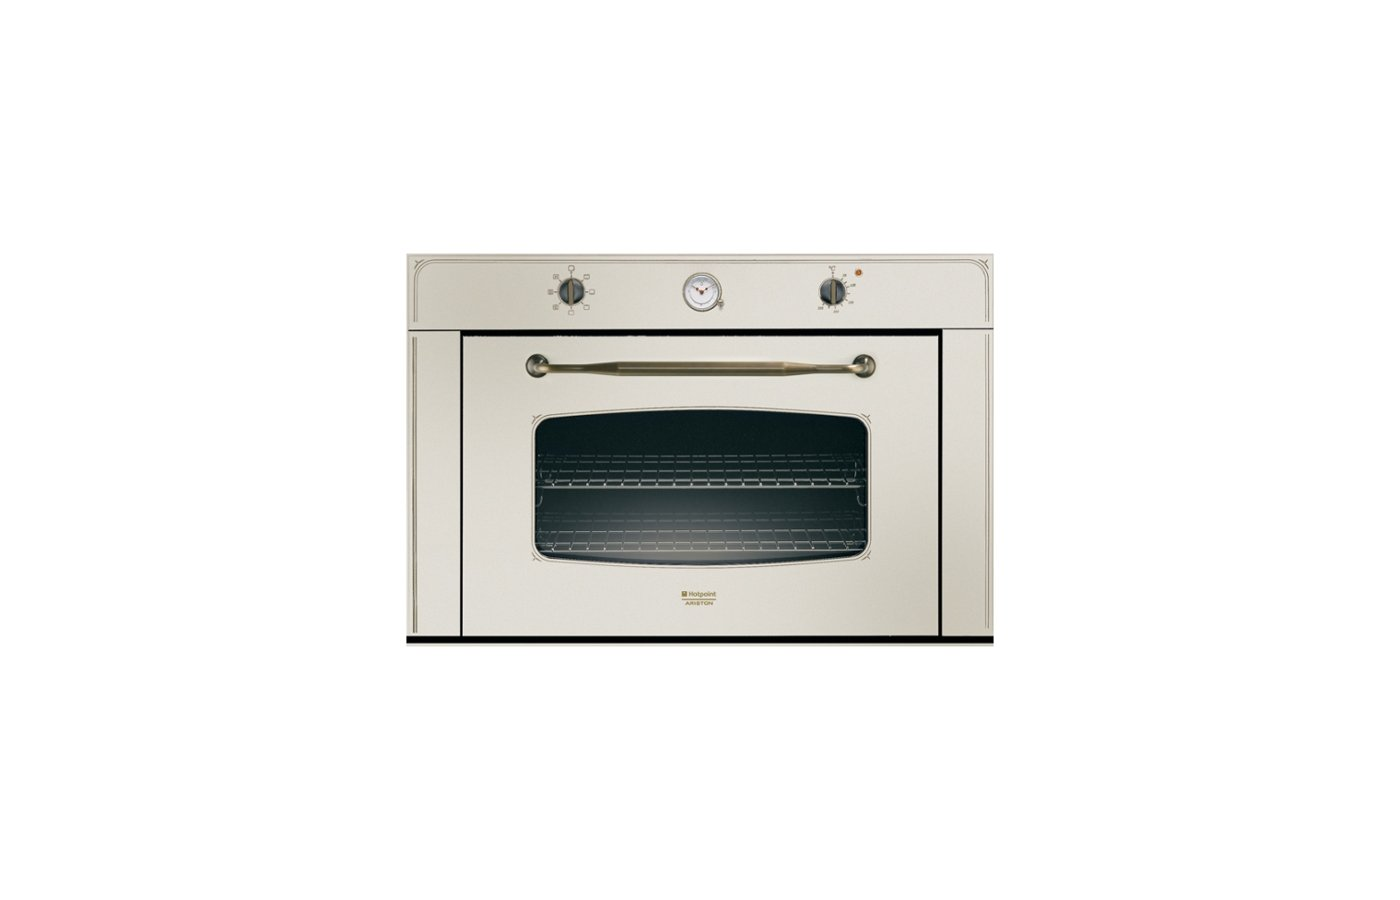 Духовой шкаф HOTPOINT-ARISTON MHR 940.1 (OW) /HA/S